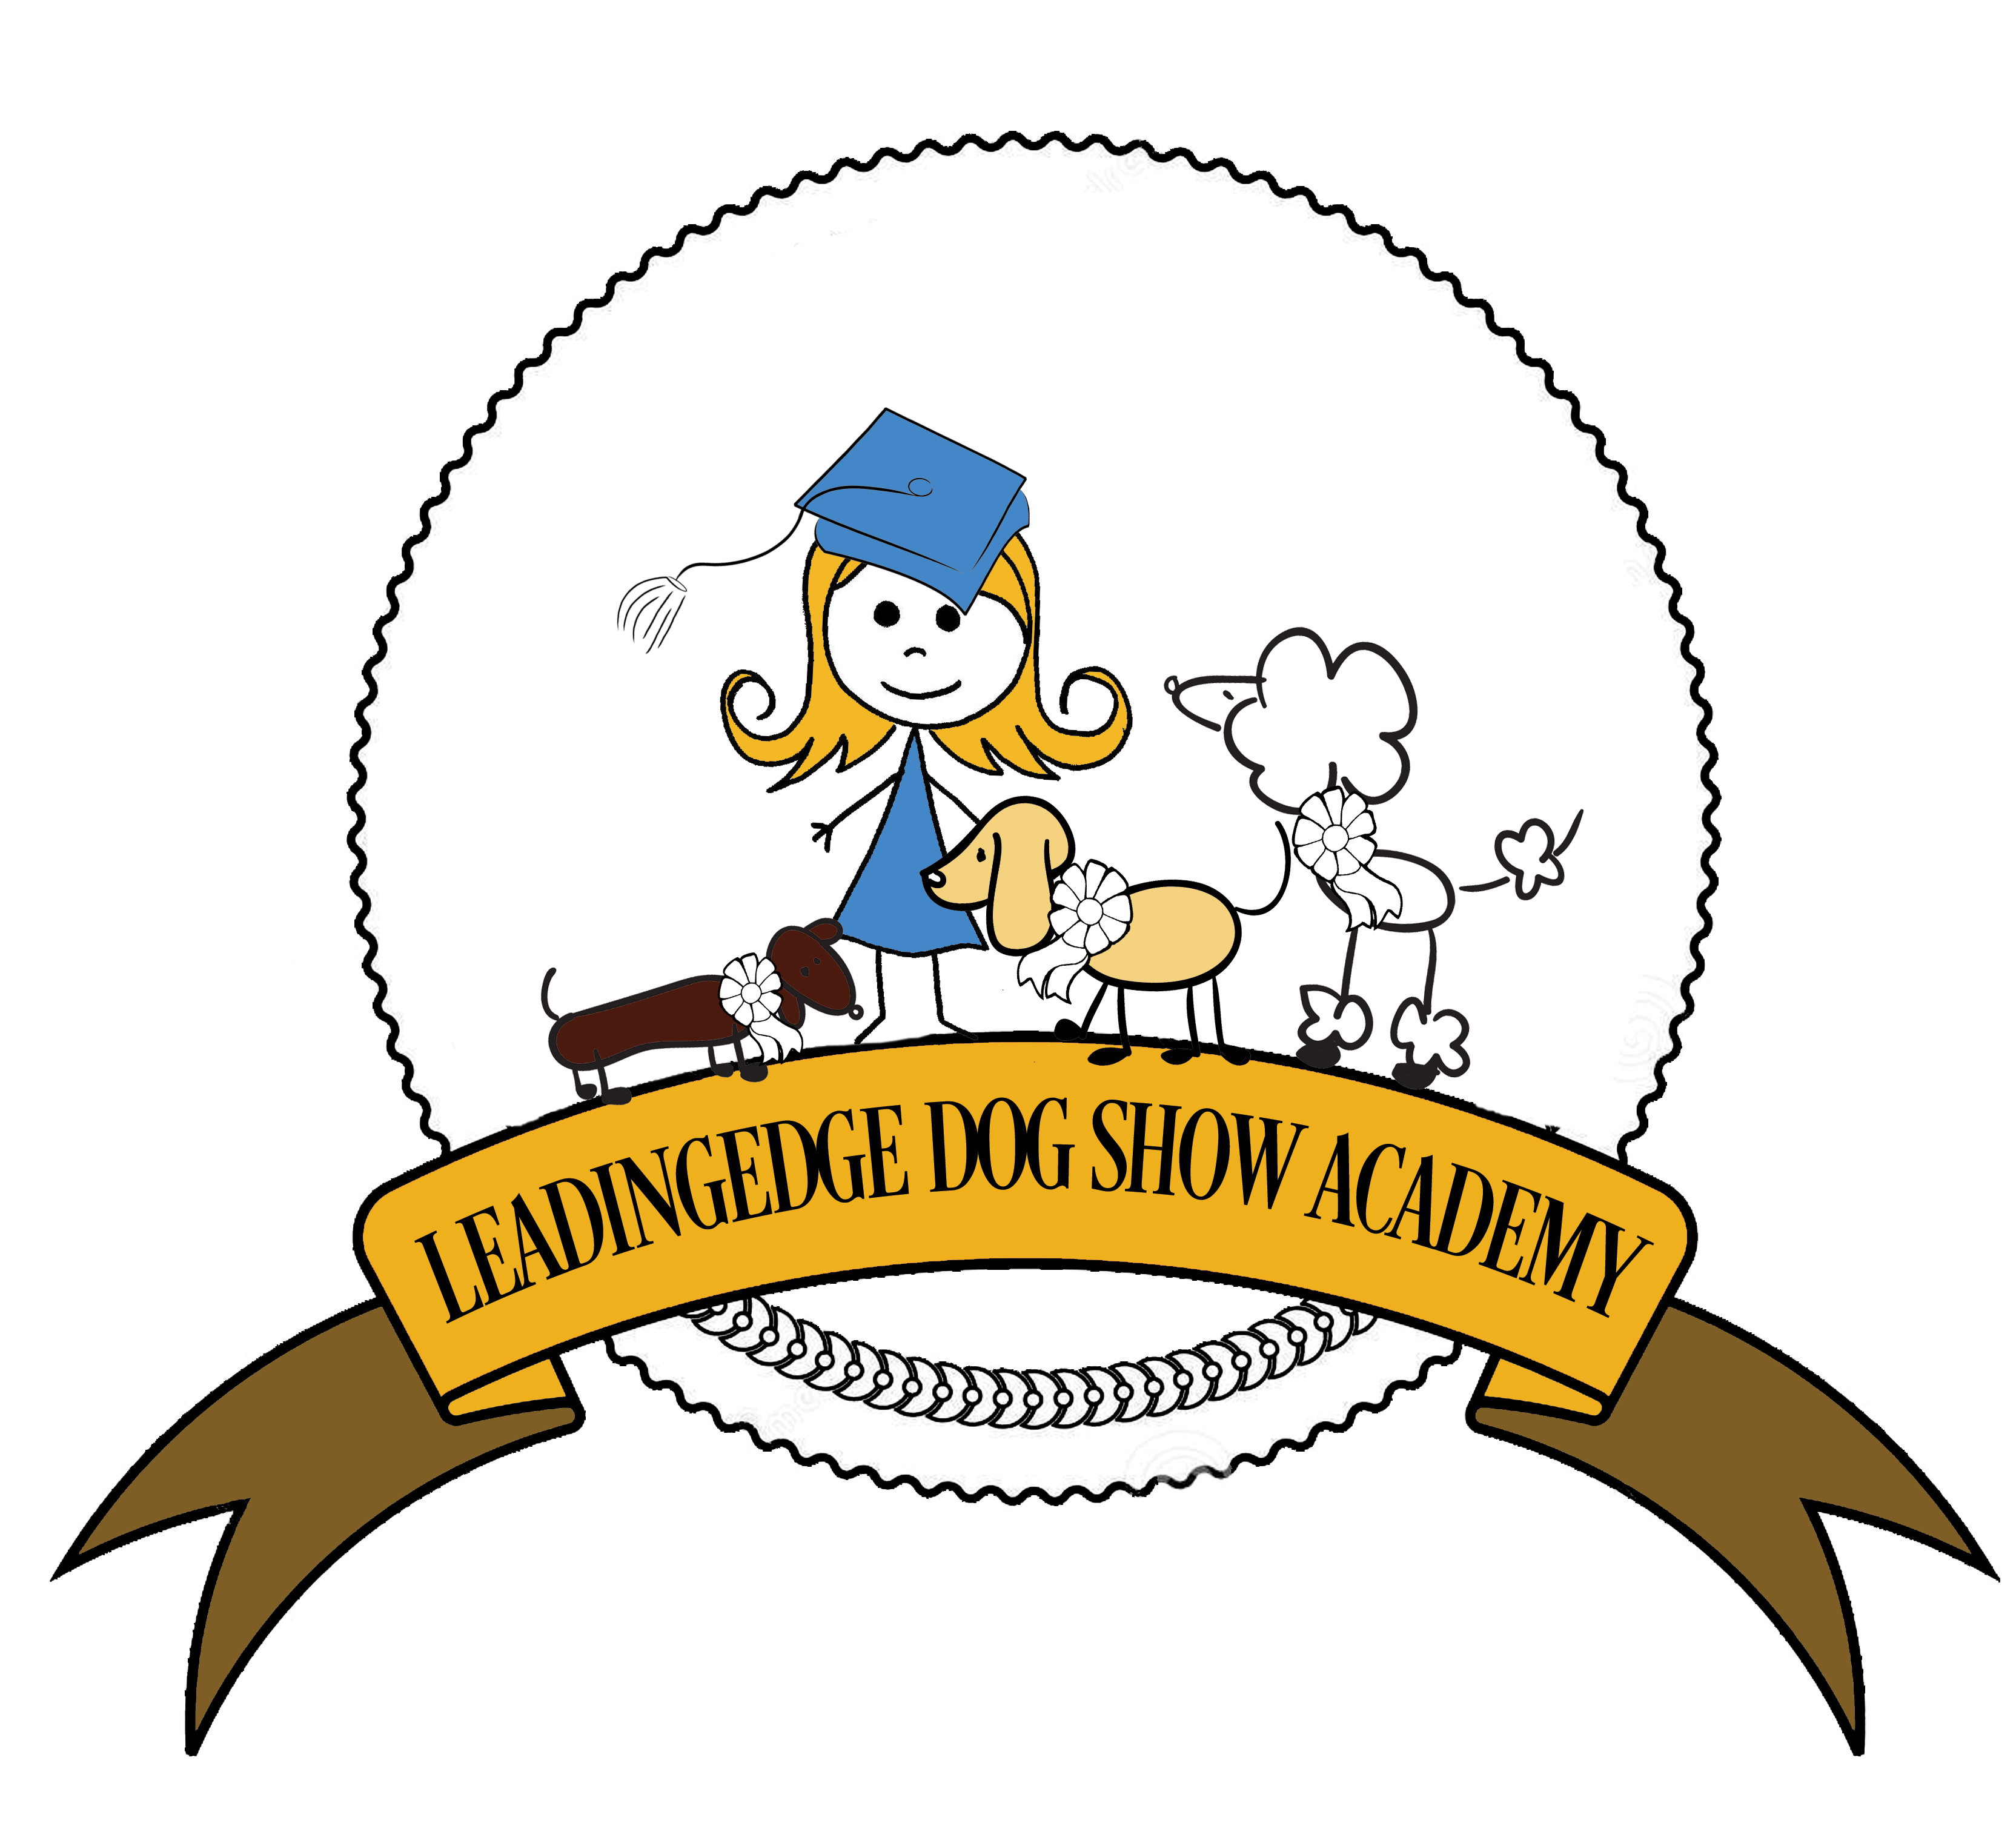 Leadingedge Dog Show Academy